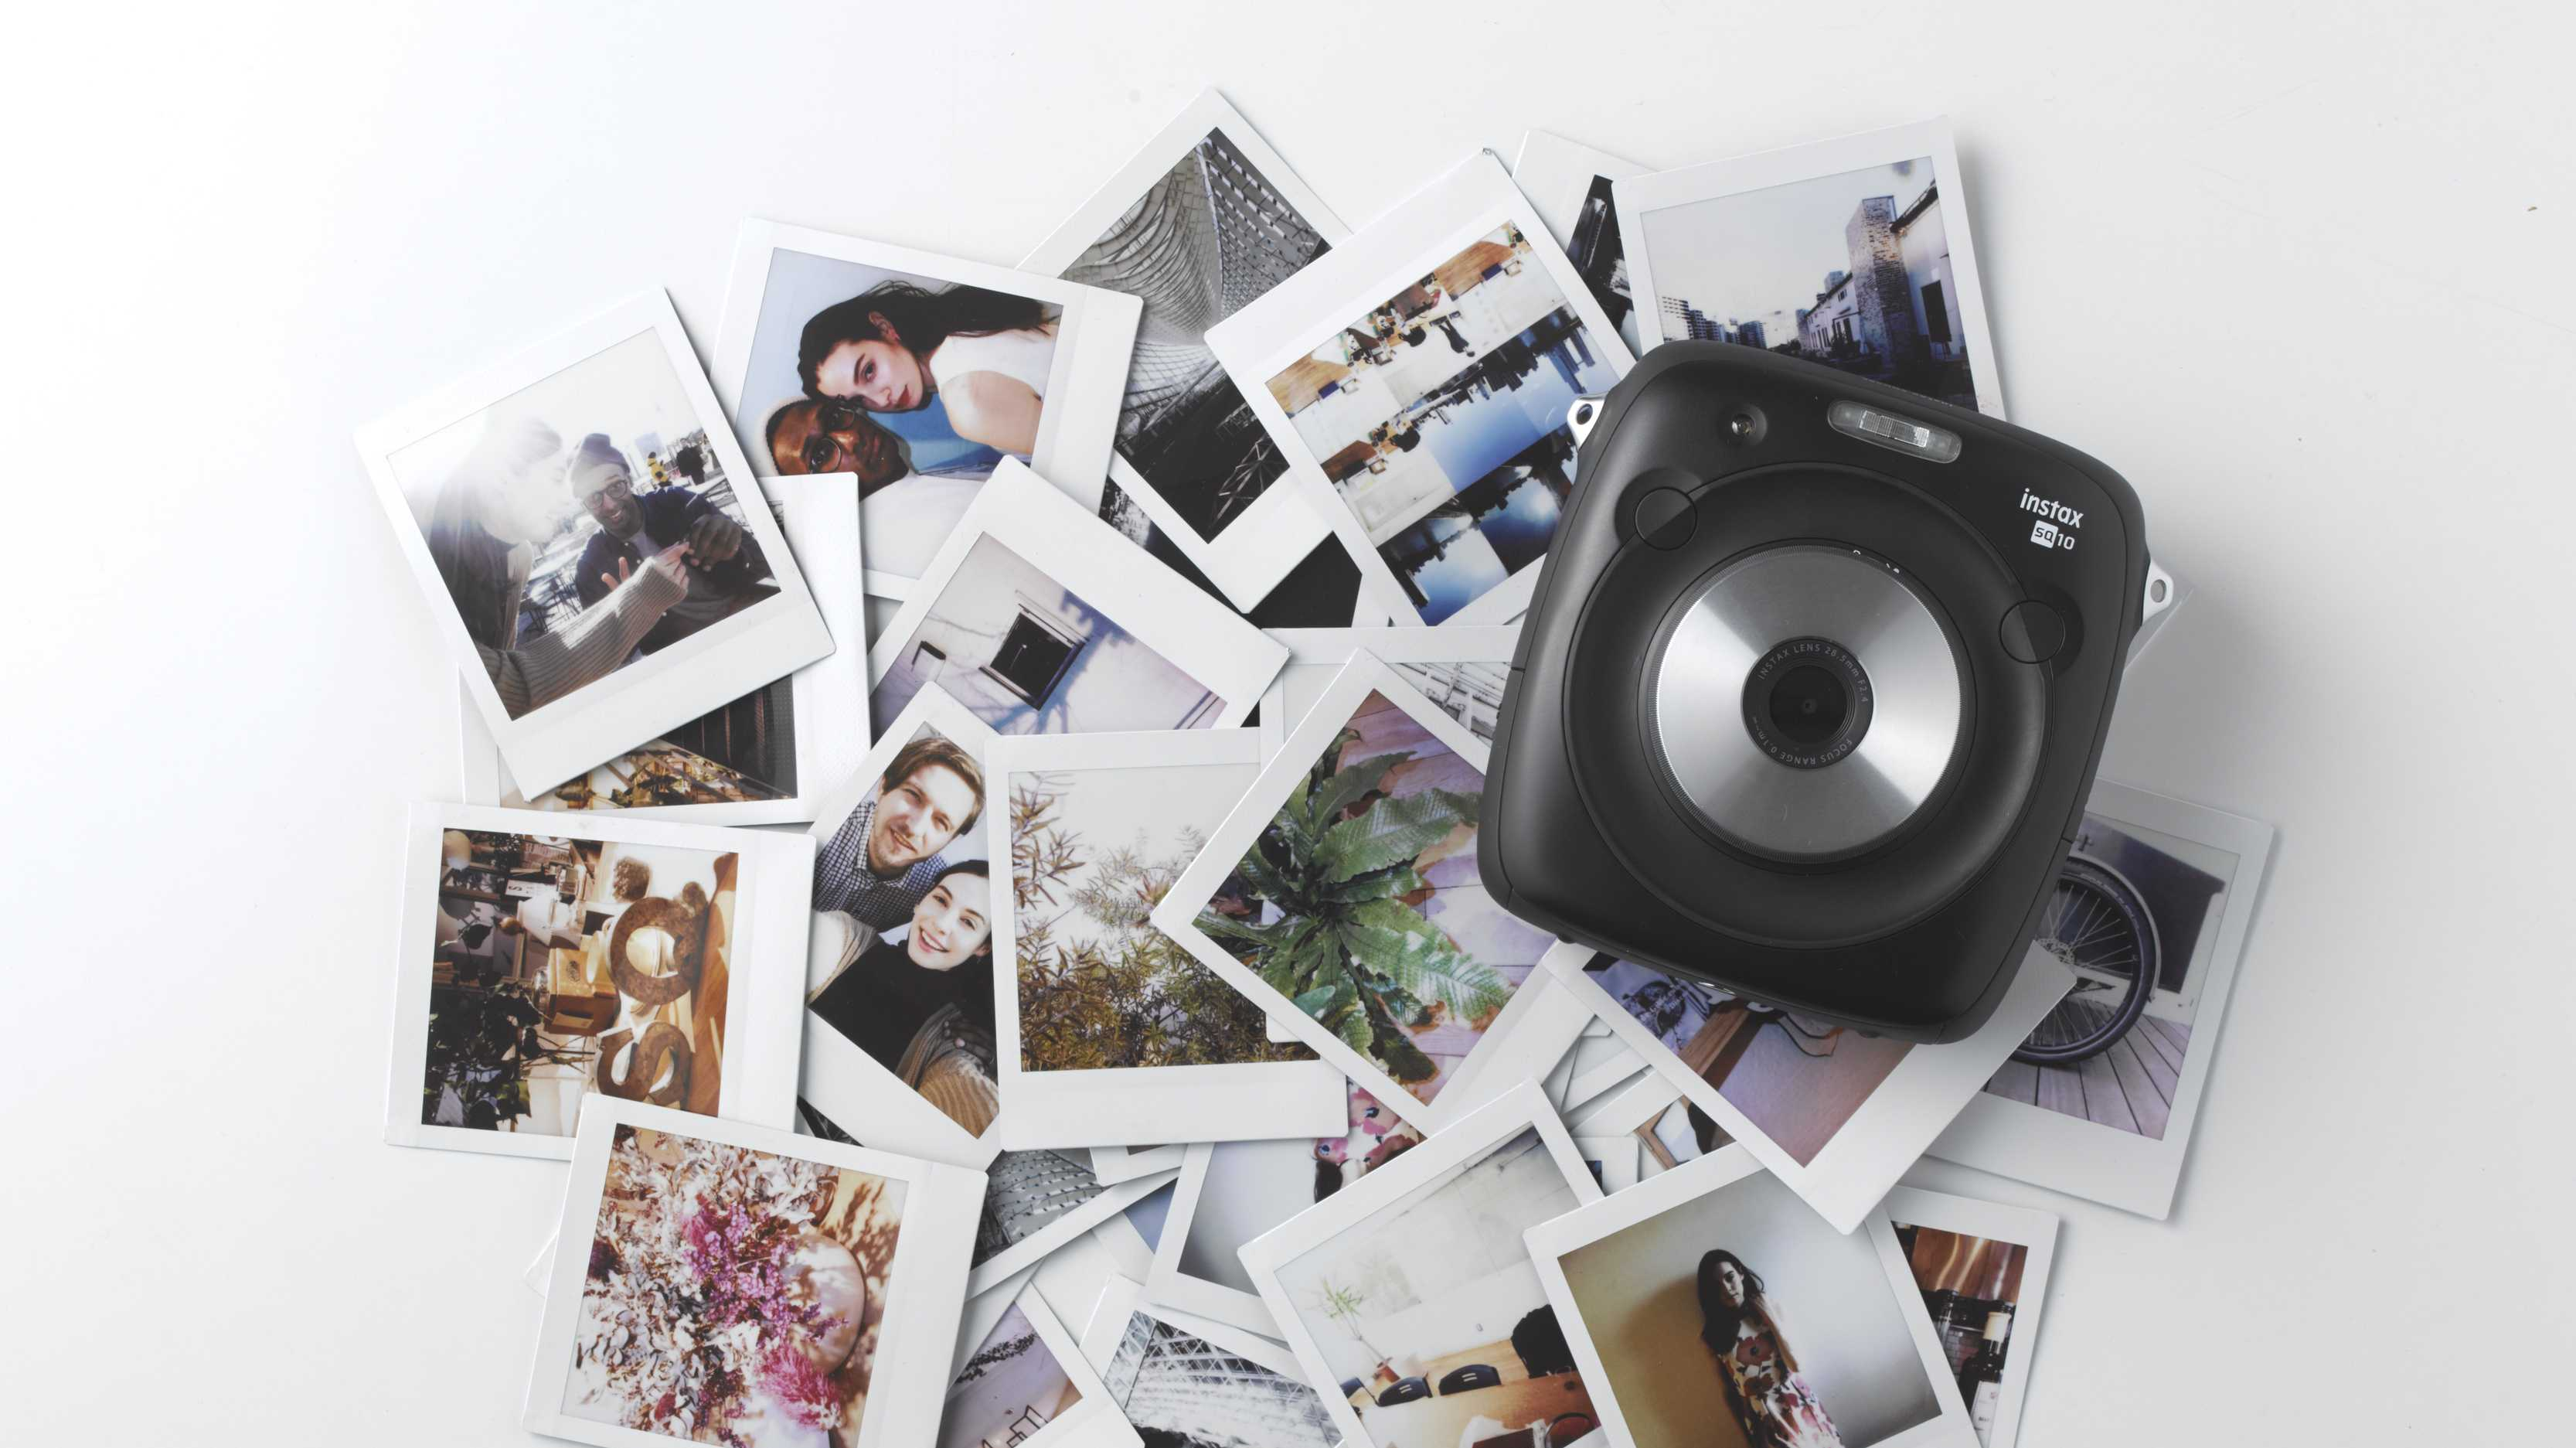 Fujifilms Instax Square SQ10 vereint analoge und digitale Technik